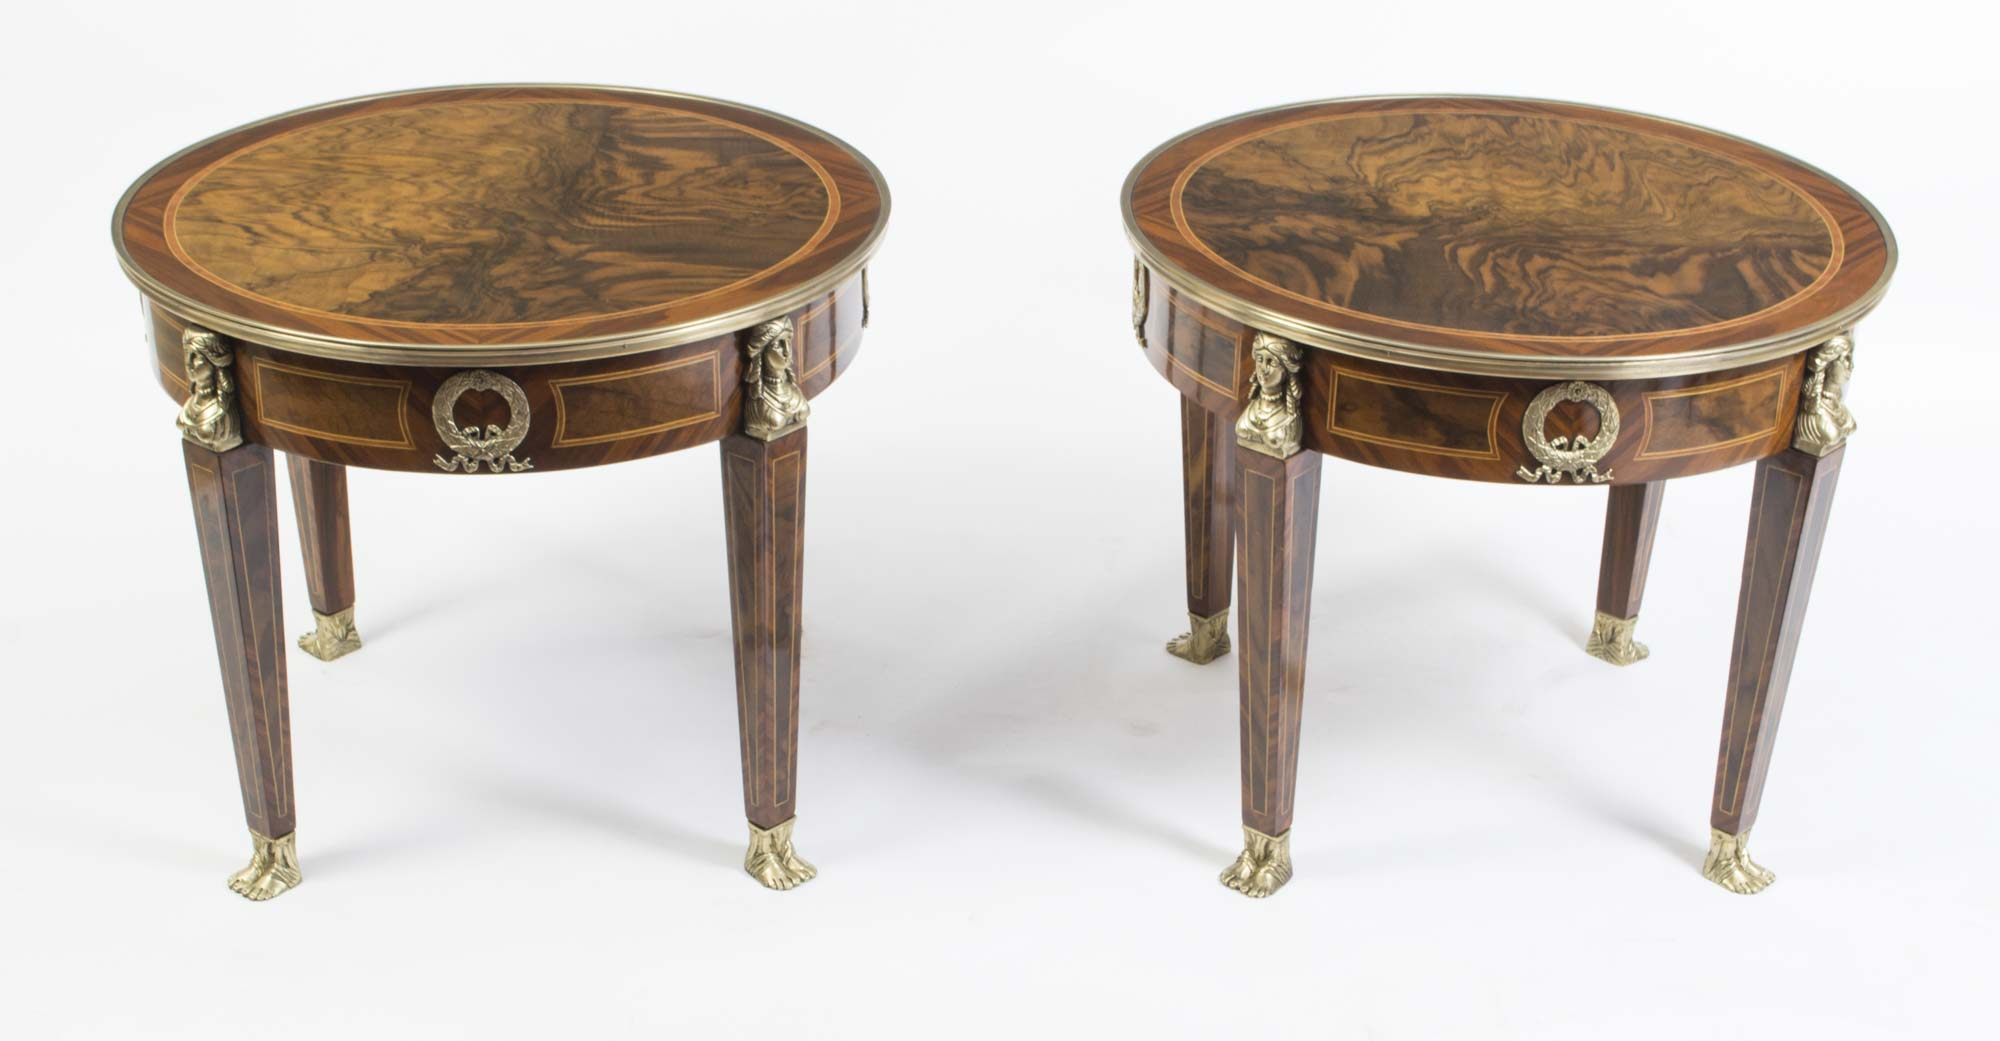 Empire Coffee Table Pair Of French Empire Style Burr Walnut Coffee Tables